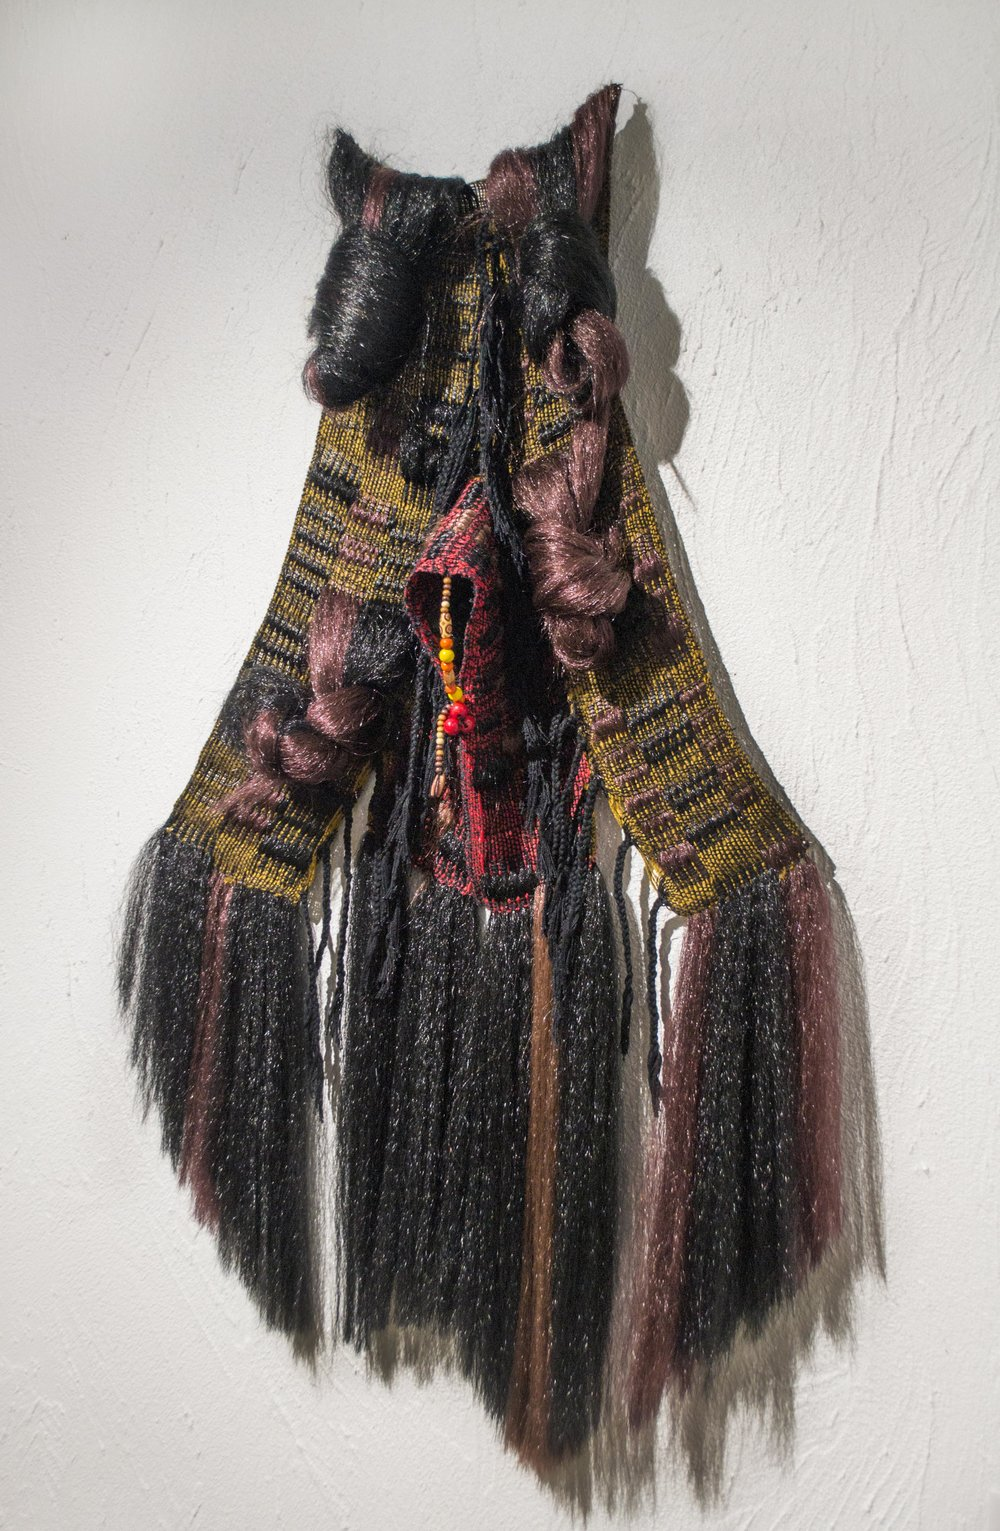 Rec-Triangular Cut  2014, Cotton, yarn, wooden beads, and synthetic hair, Photographer: Sylvia Abisaab